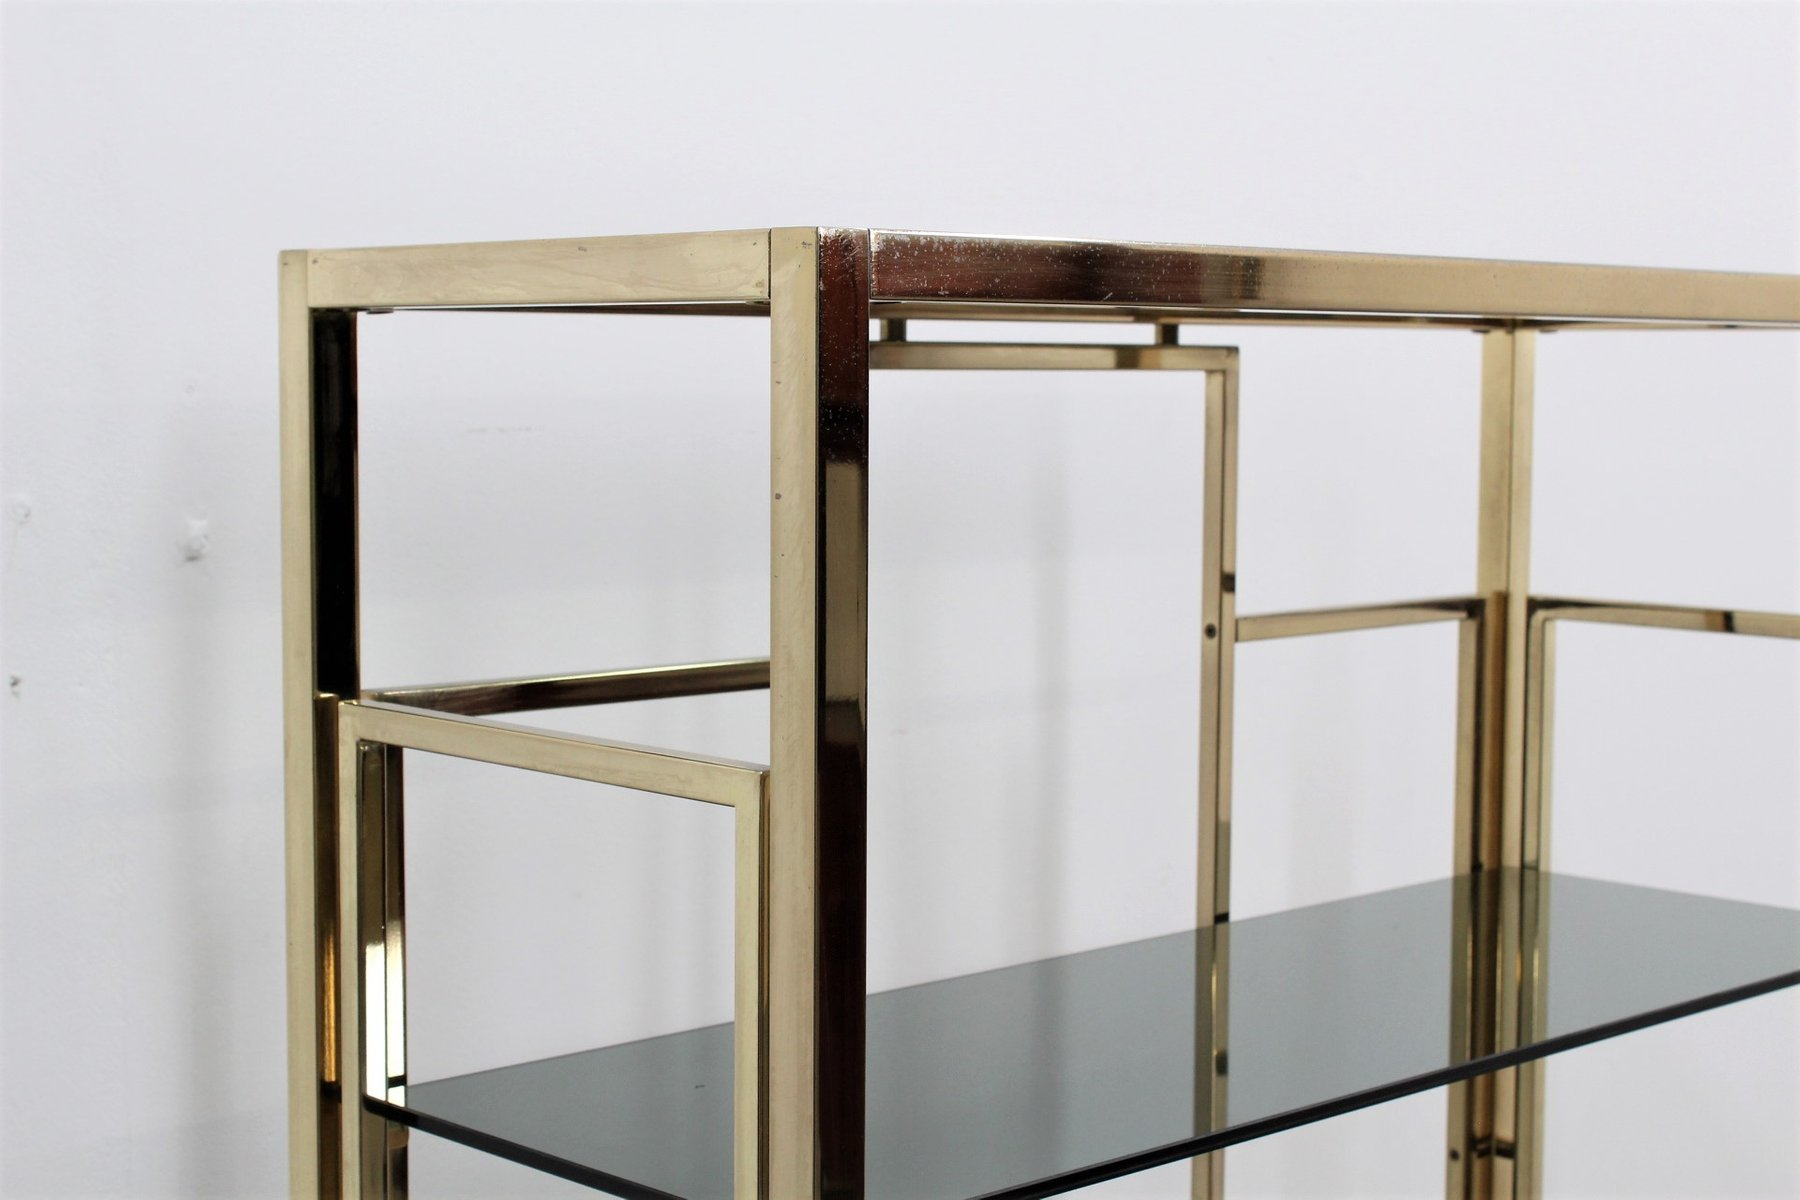 Vintage brass etagere by romeo rega 1970s for sale at pamono - Etagere string vintage ...